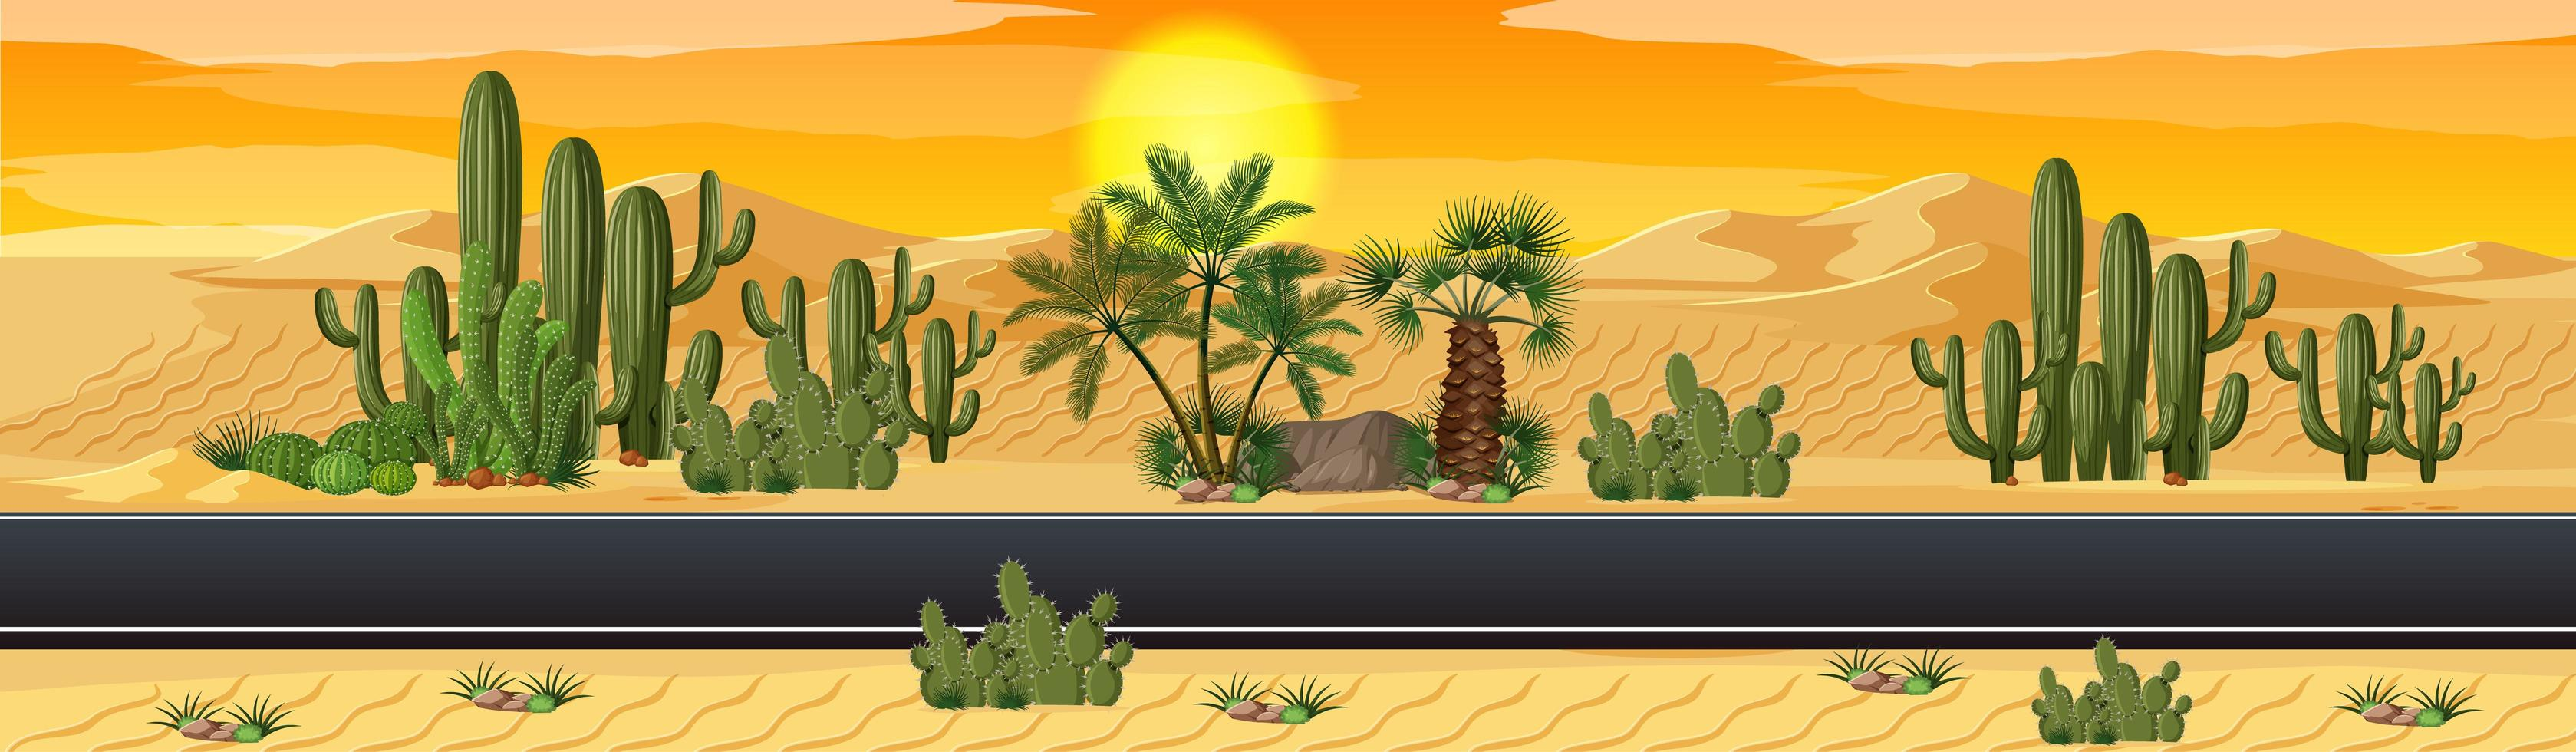 Desert with road nature landscape scene vector